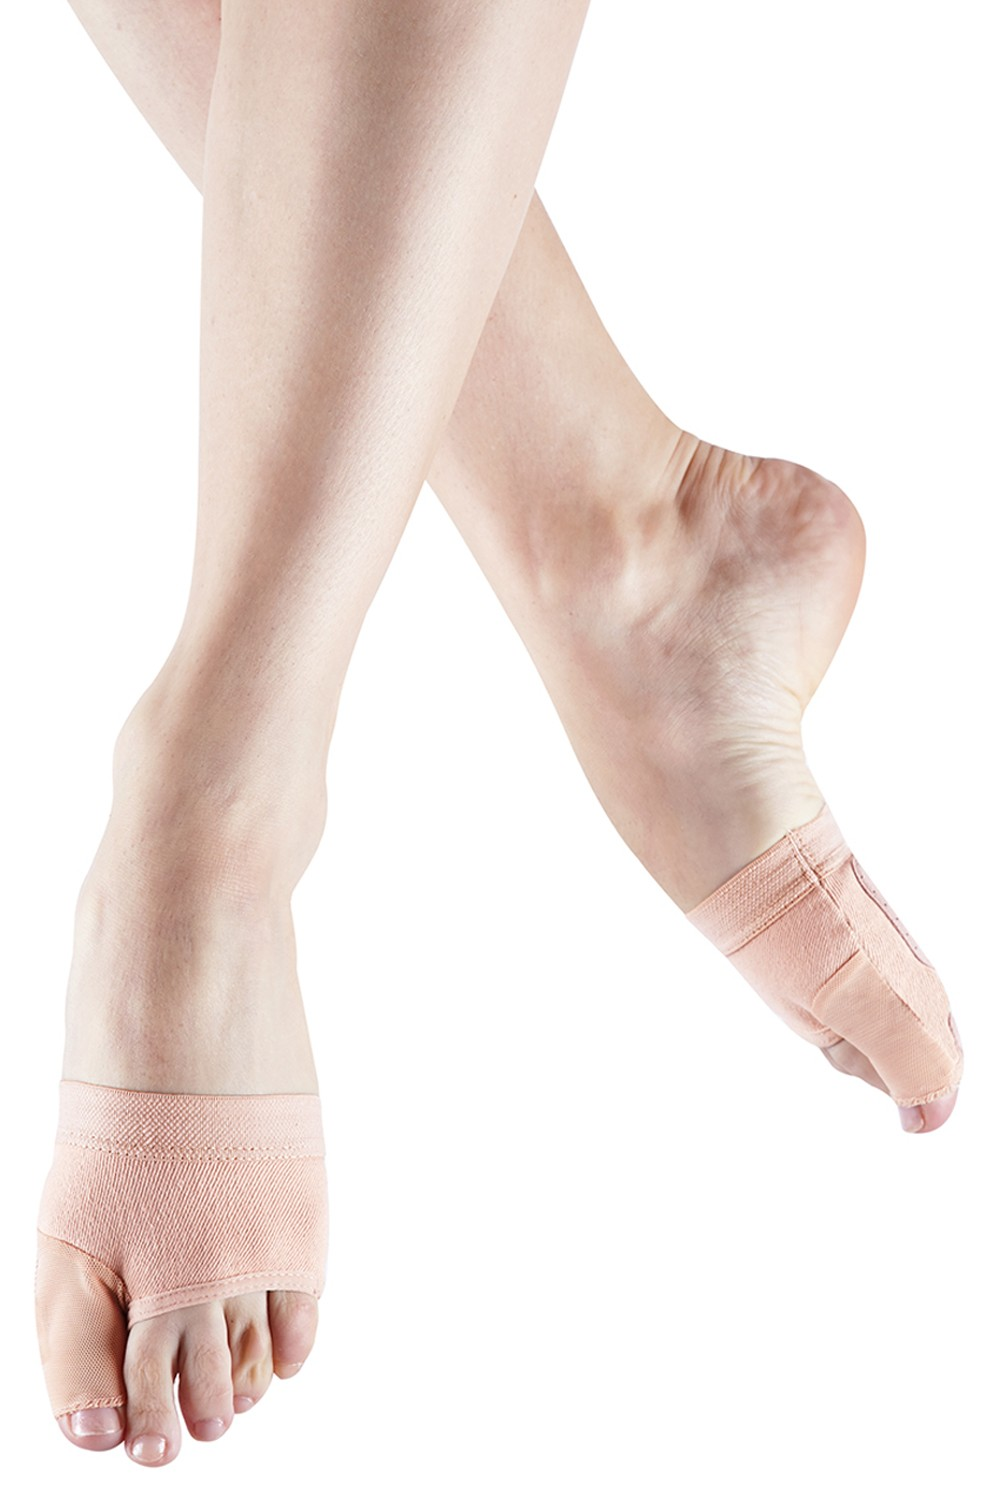 Vortex Women's Contemporary Dance Shoes